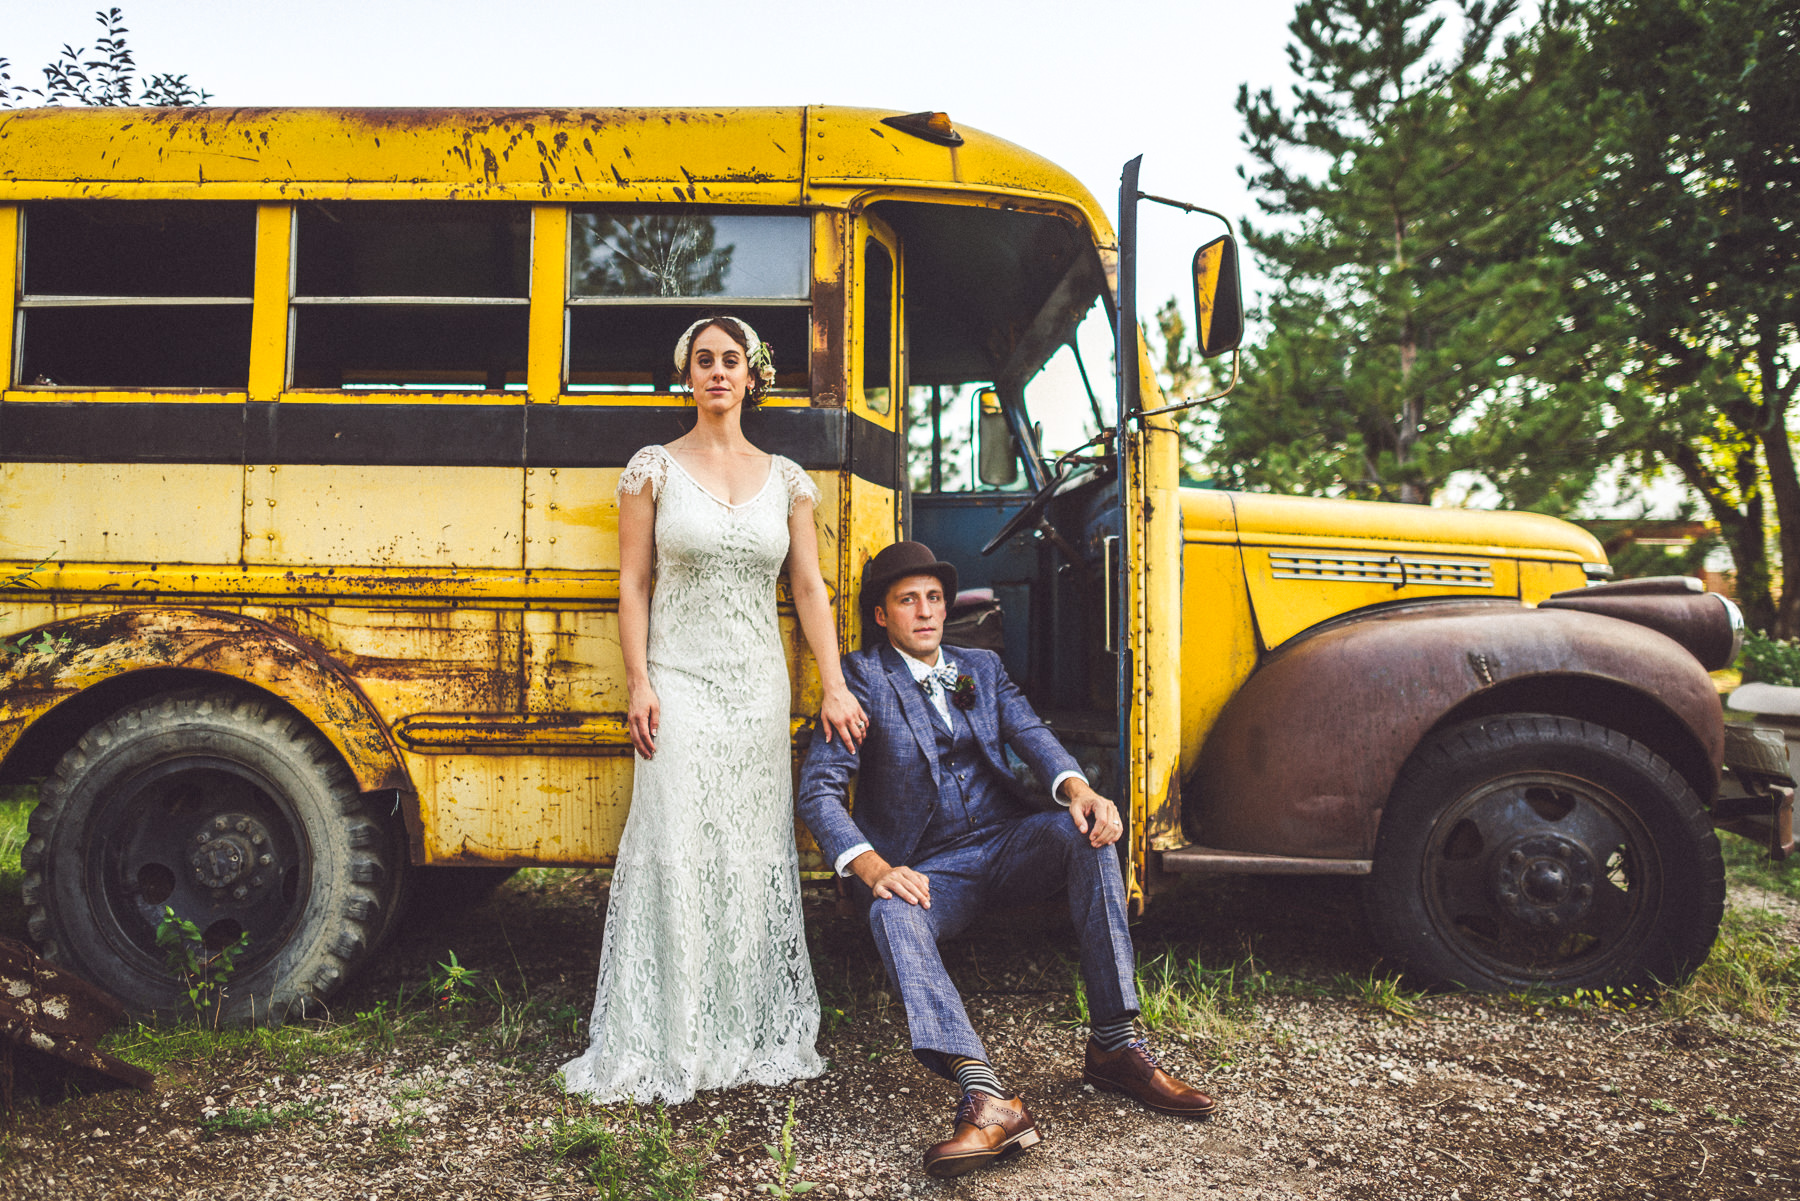 Bride & Groom pose in front of Yellow School Bus at their Hillside Gardens & Events wedding.